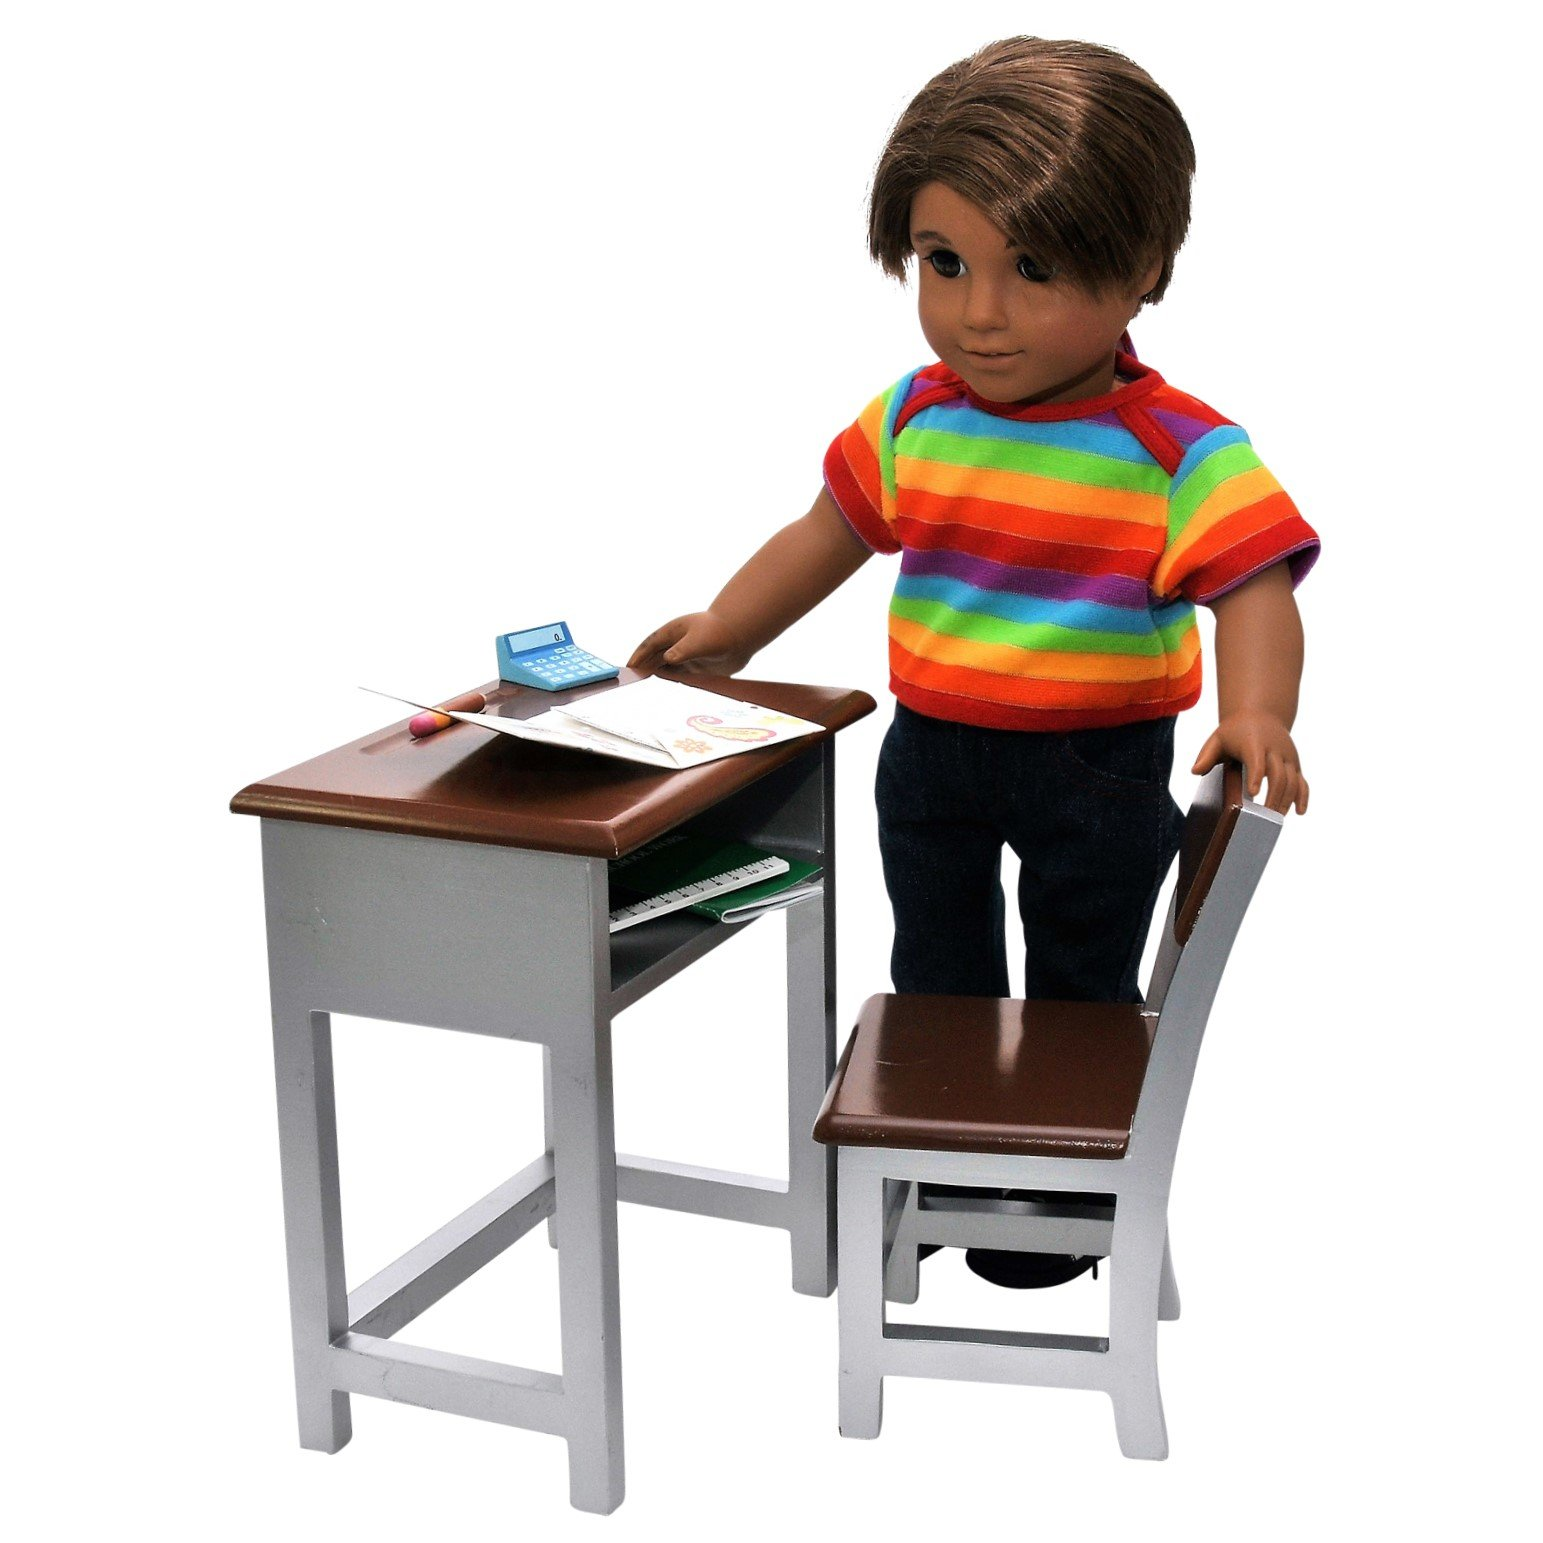 Wooden Modern School Desk & Chair and Storage Shelf Plush School Supply Accessories Including Folder, Paper, Journal, Pencil, Calculator, Ruler Sized For 18 Inch American Girl Dolls